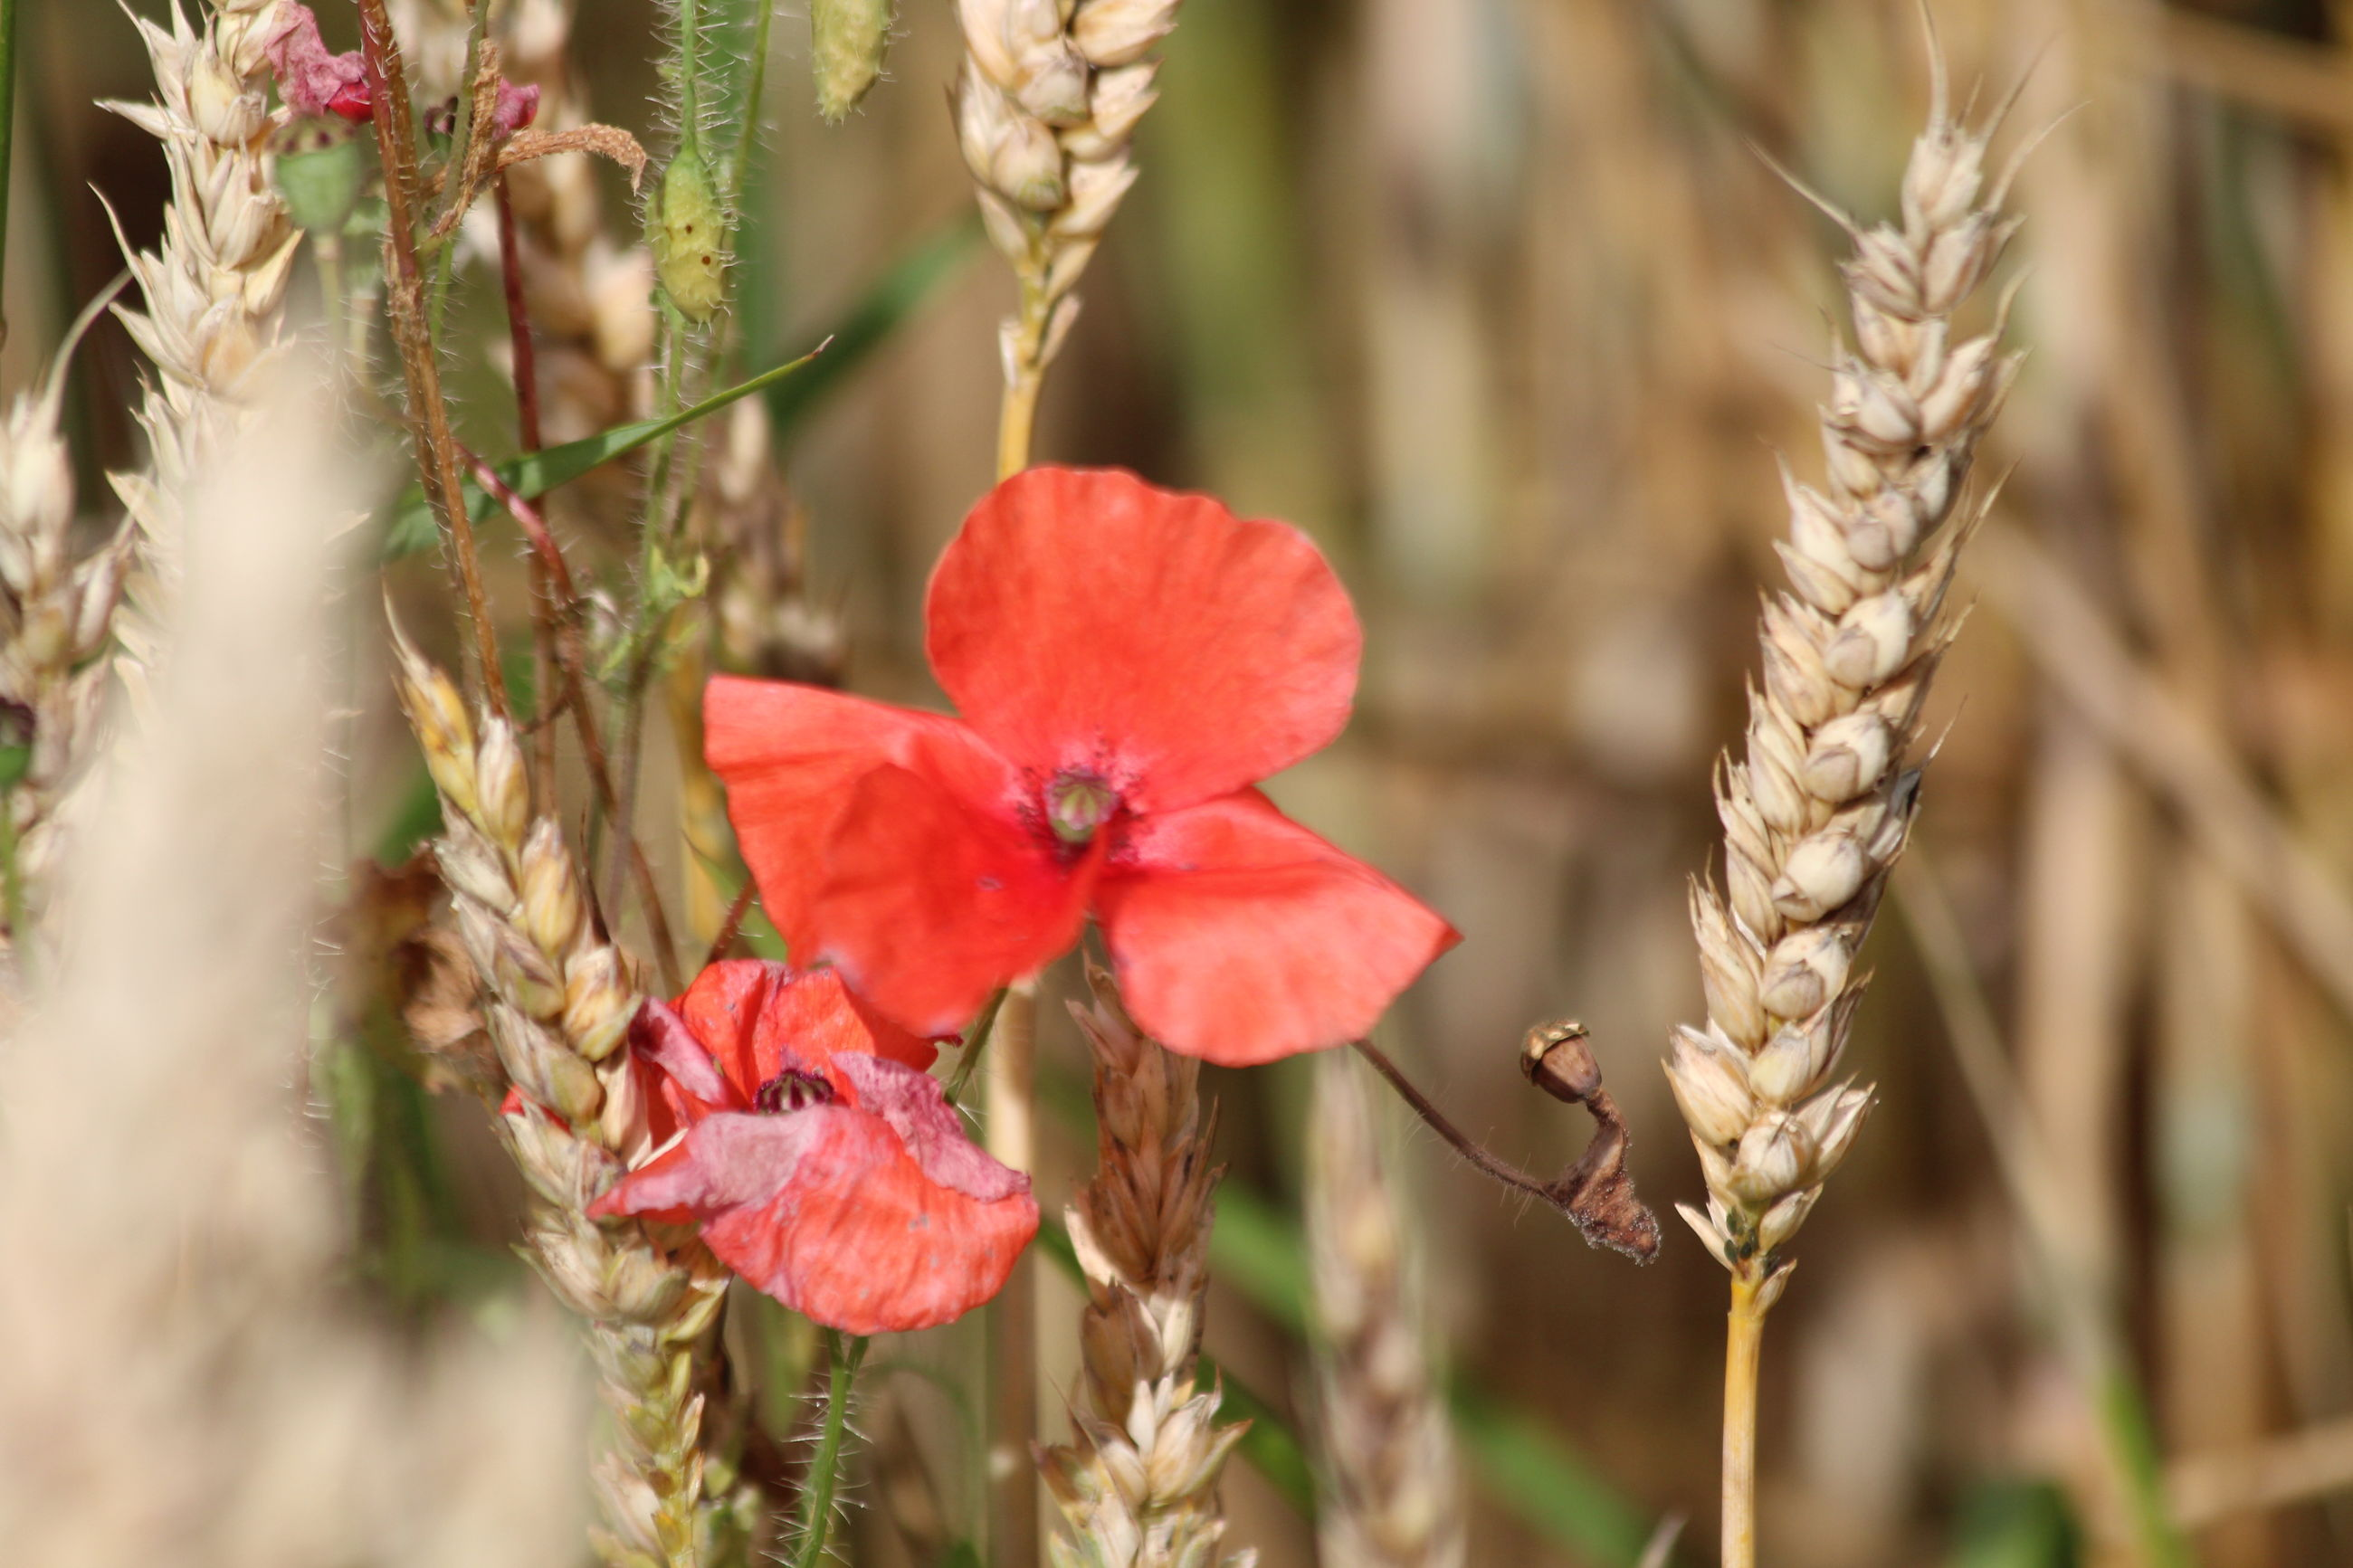 Red poppies and crops growing on field